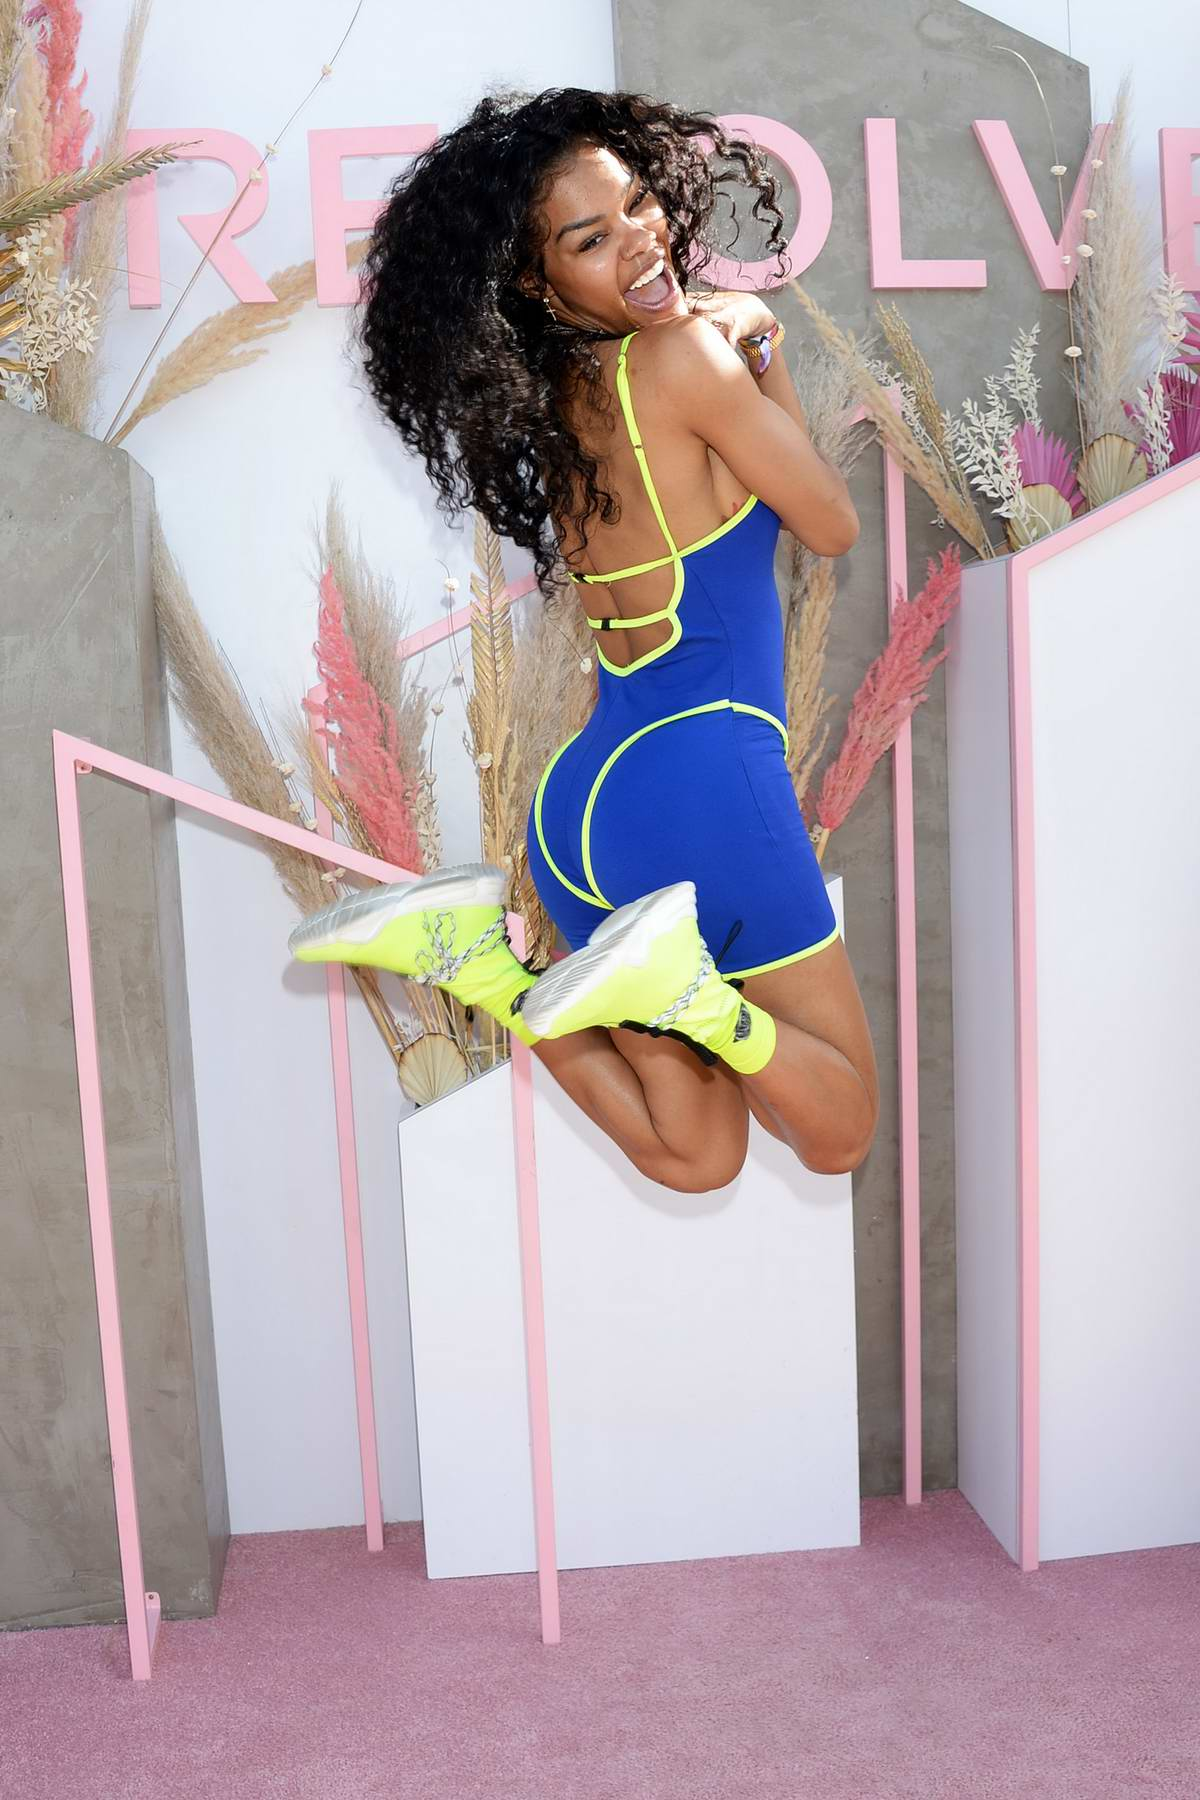 Teyana Taylor attends Revolvefestival 2019 - Day 2 during Coachella Valley Music and Arts Festival in Indio, California